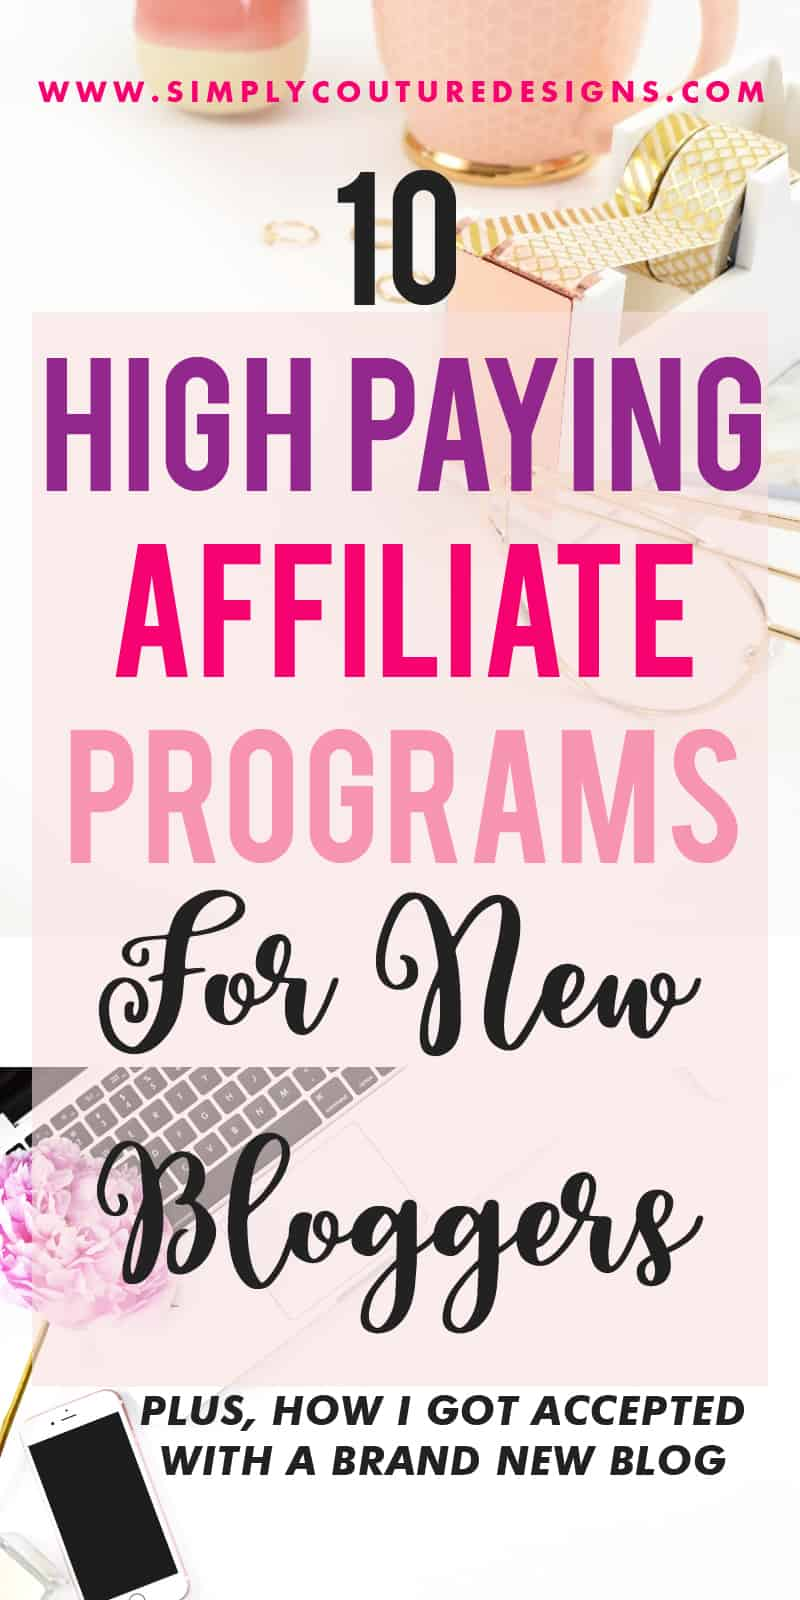 Affiliate programs for new bloggers | Find out how I got accepted into 10 high paying affiliate programs for new bloggers with a brand new blog